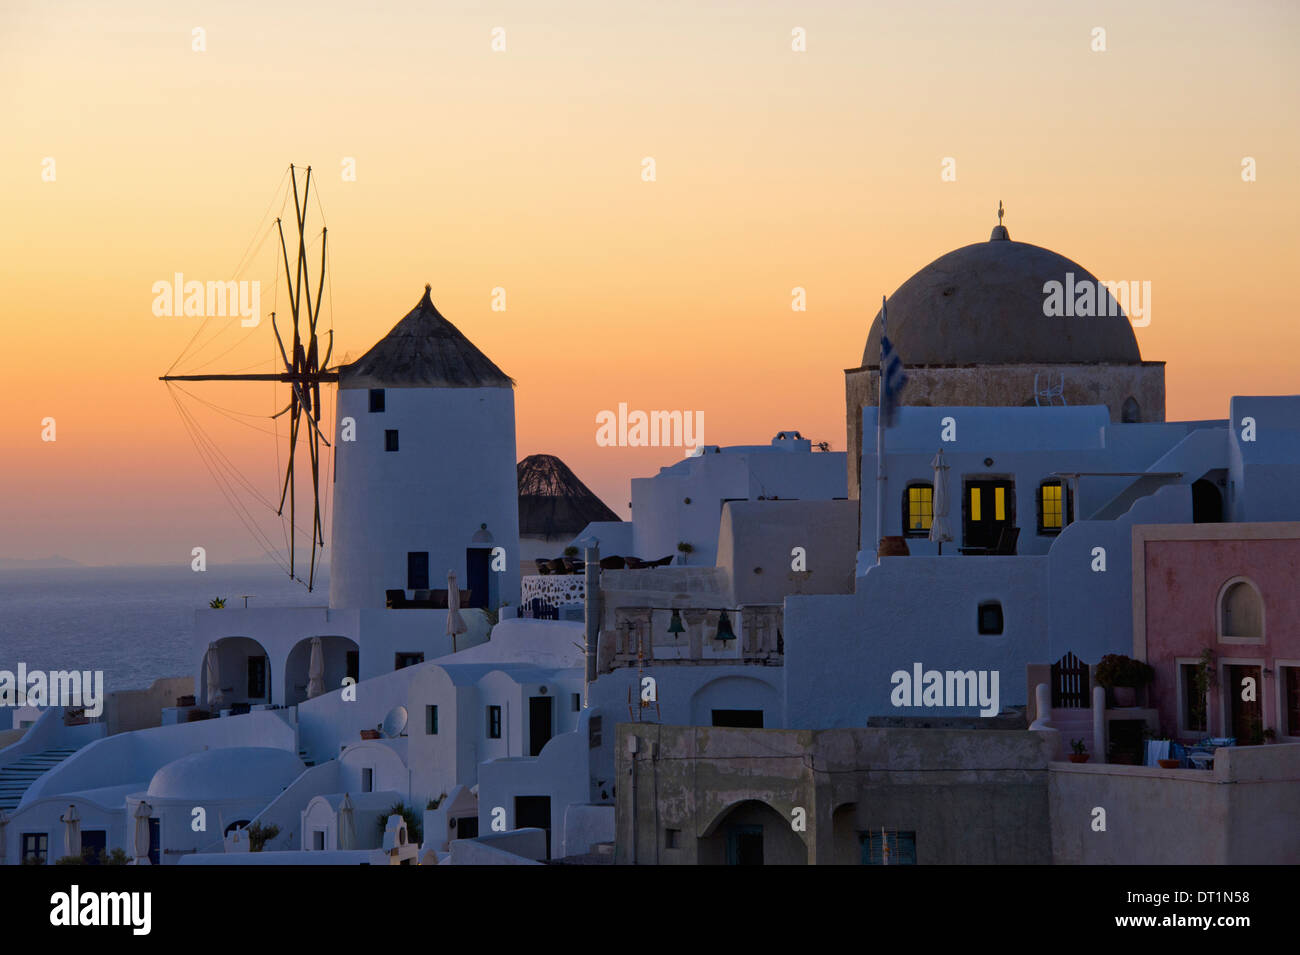 The historic white washed houses windmills and domed church of Oia town on Santorini island - Stock Image